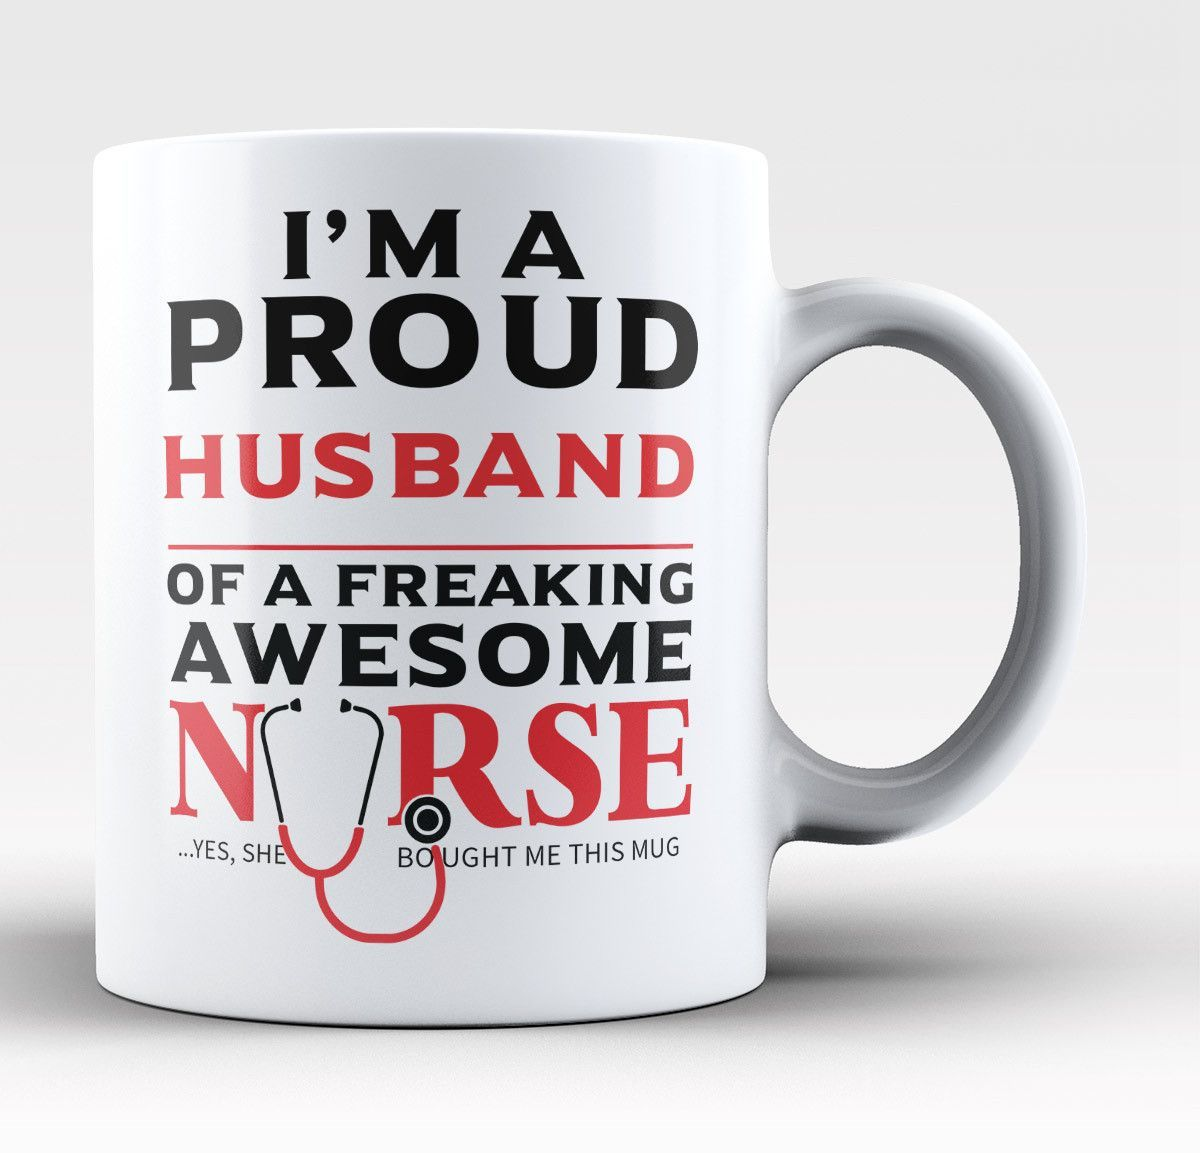 Proud Of Our Nurses And Their Family: Proud Husband Of An Awesome Nurse - Mug